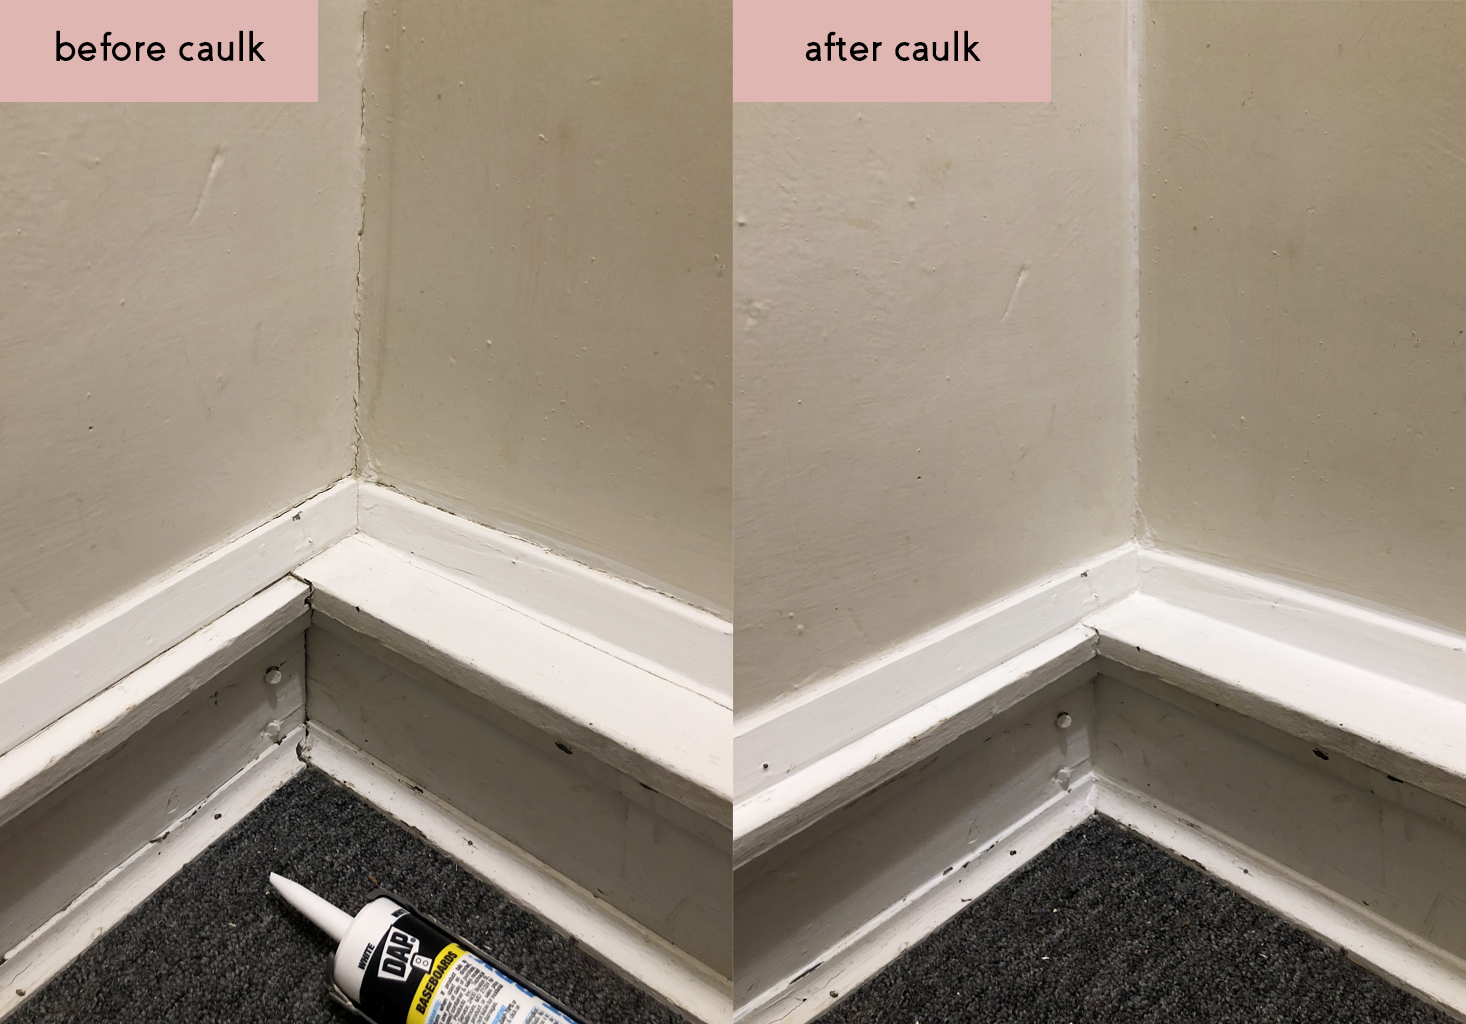 Basement Stairway Project - Painters Caulk Before and After